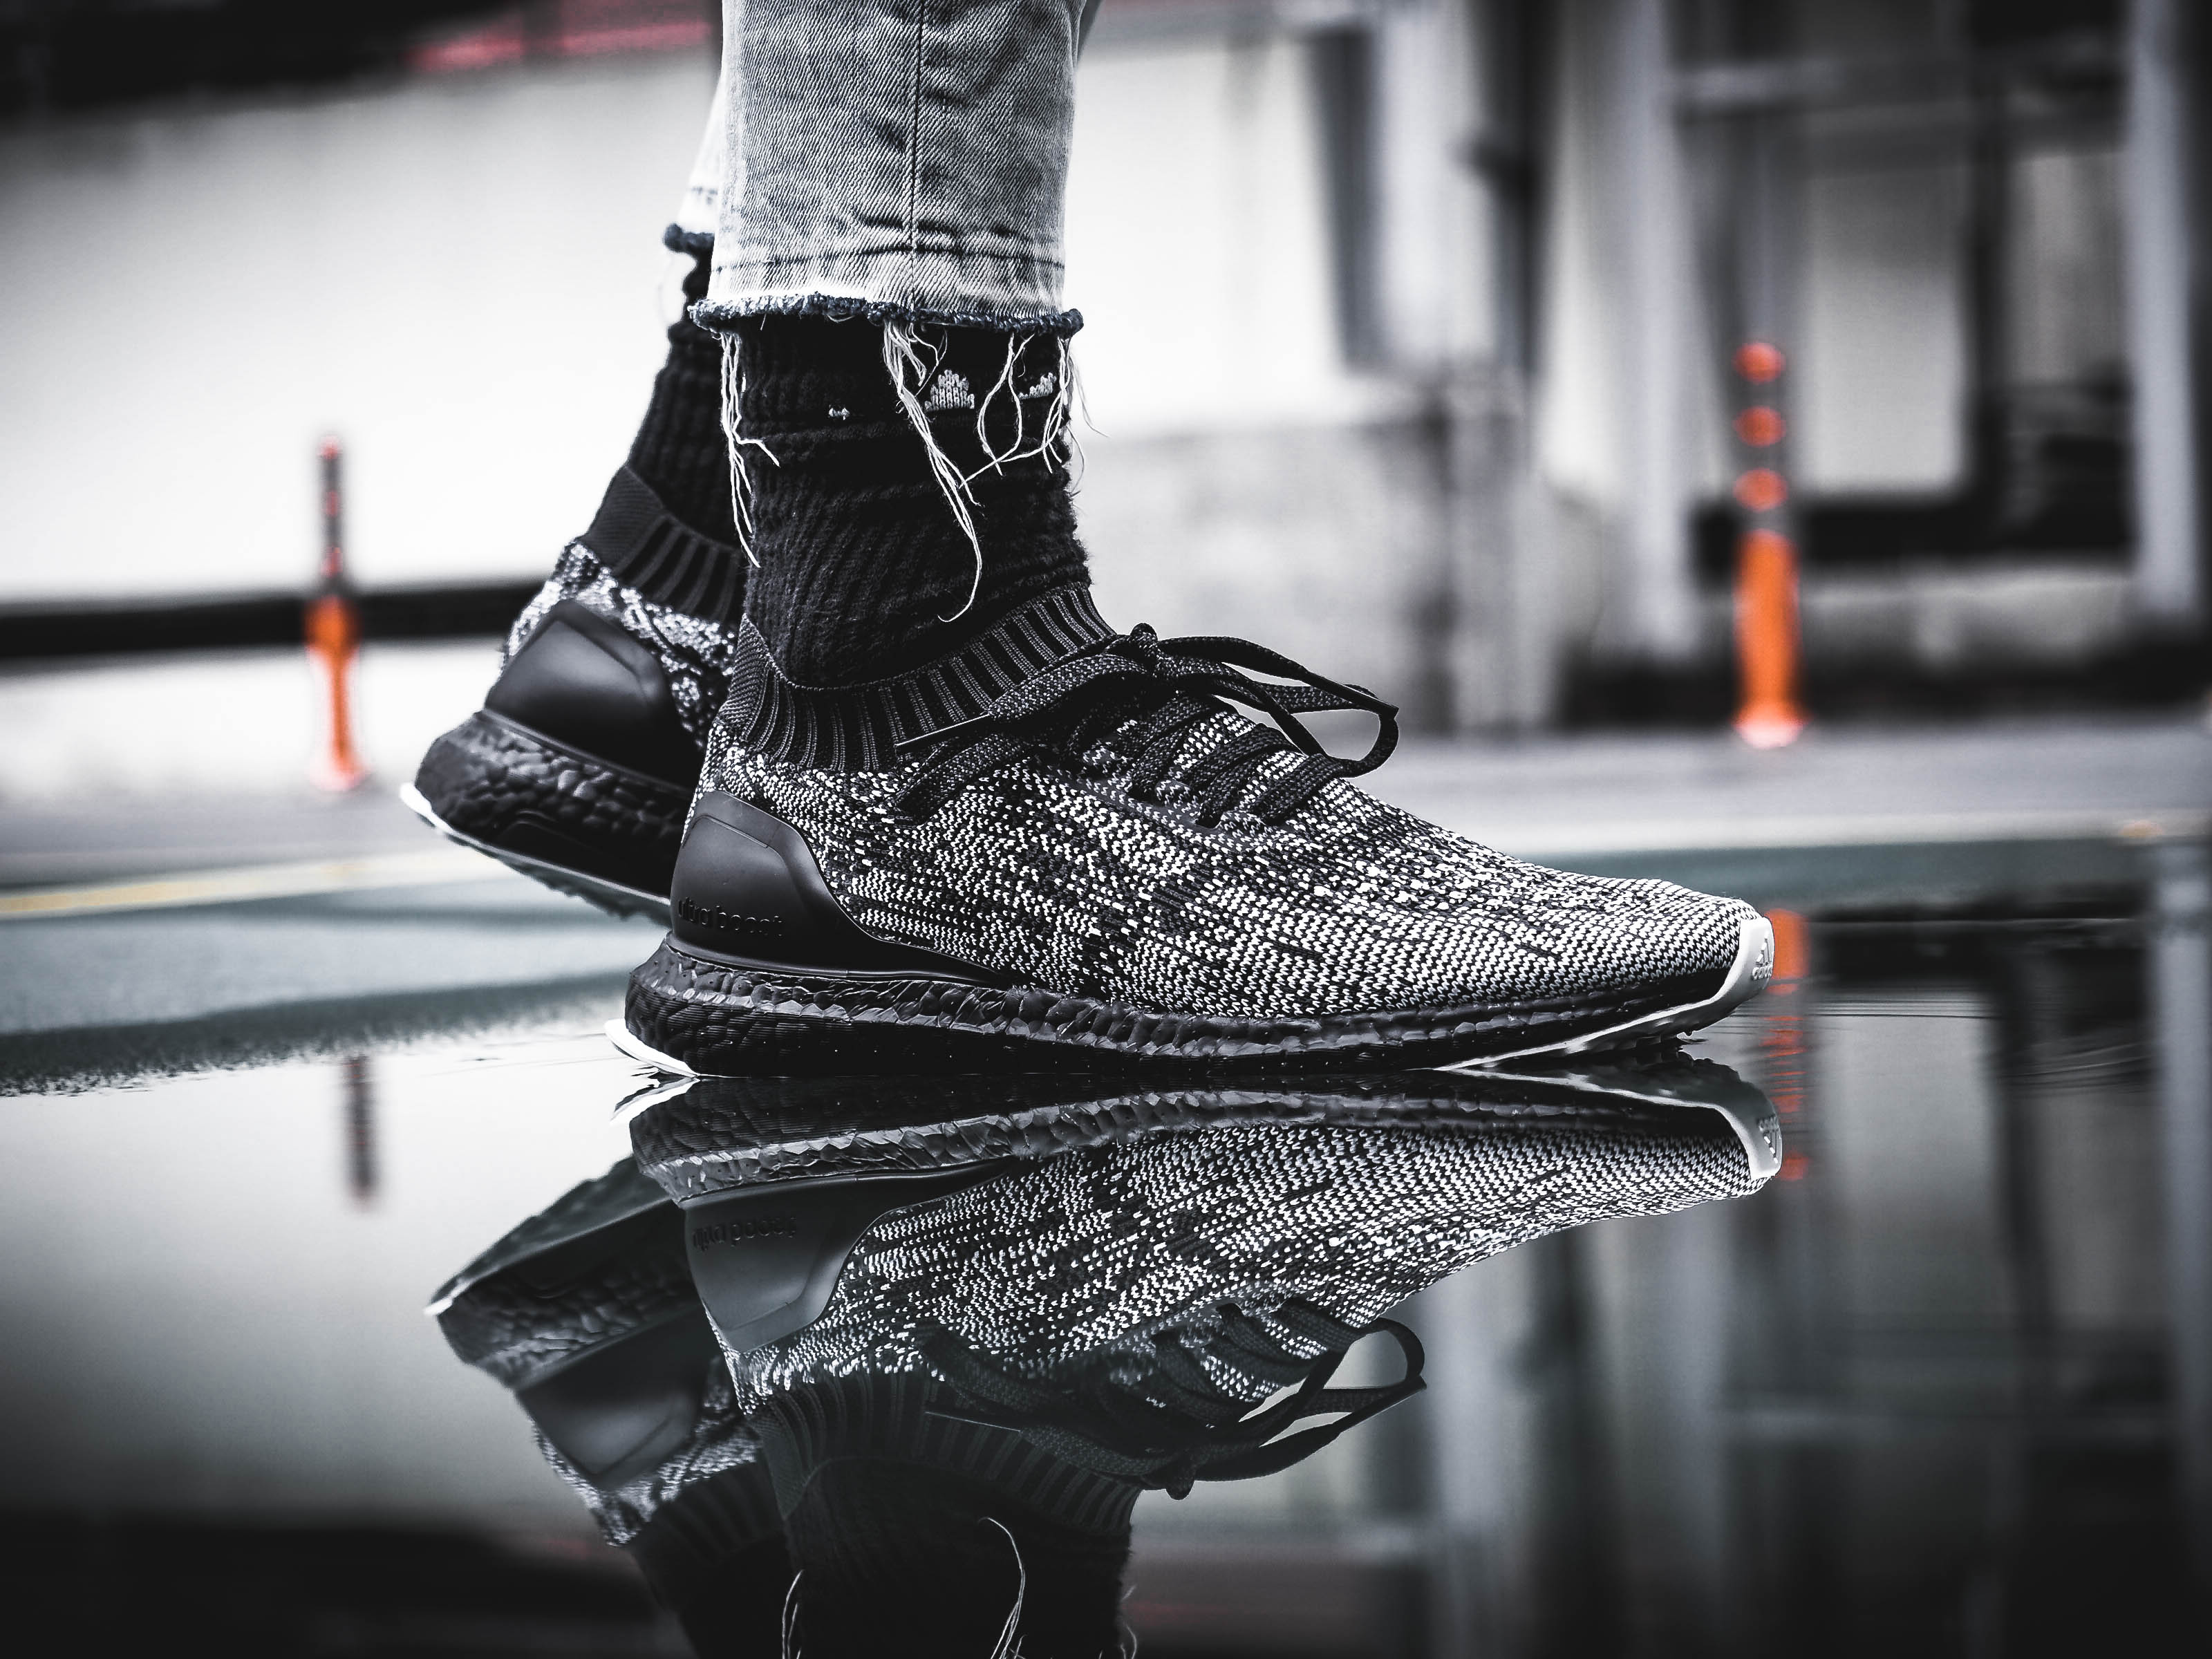 e9858c9a85194 The adidas Ultra Boost Uncaged